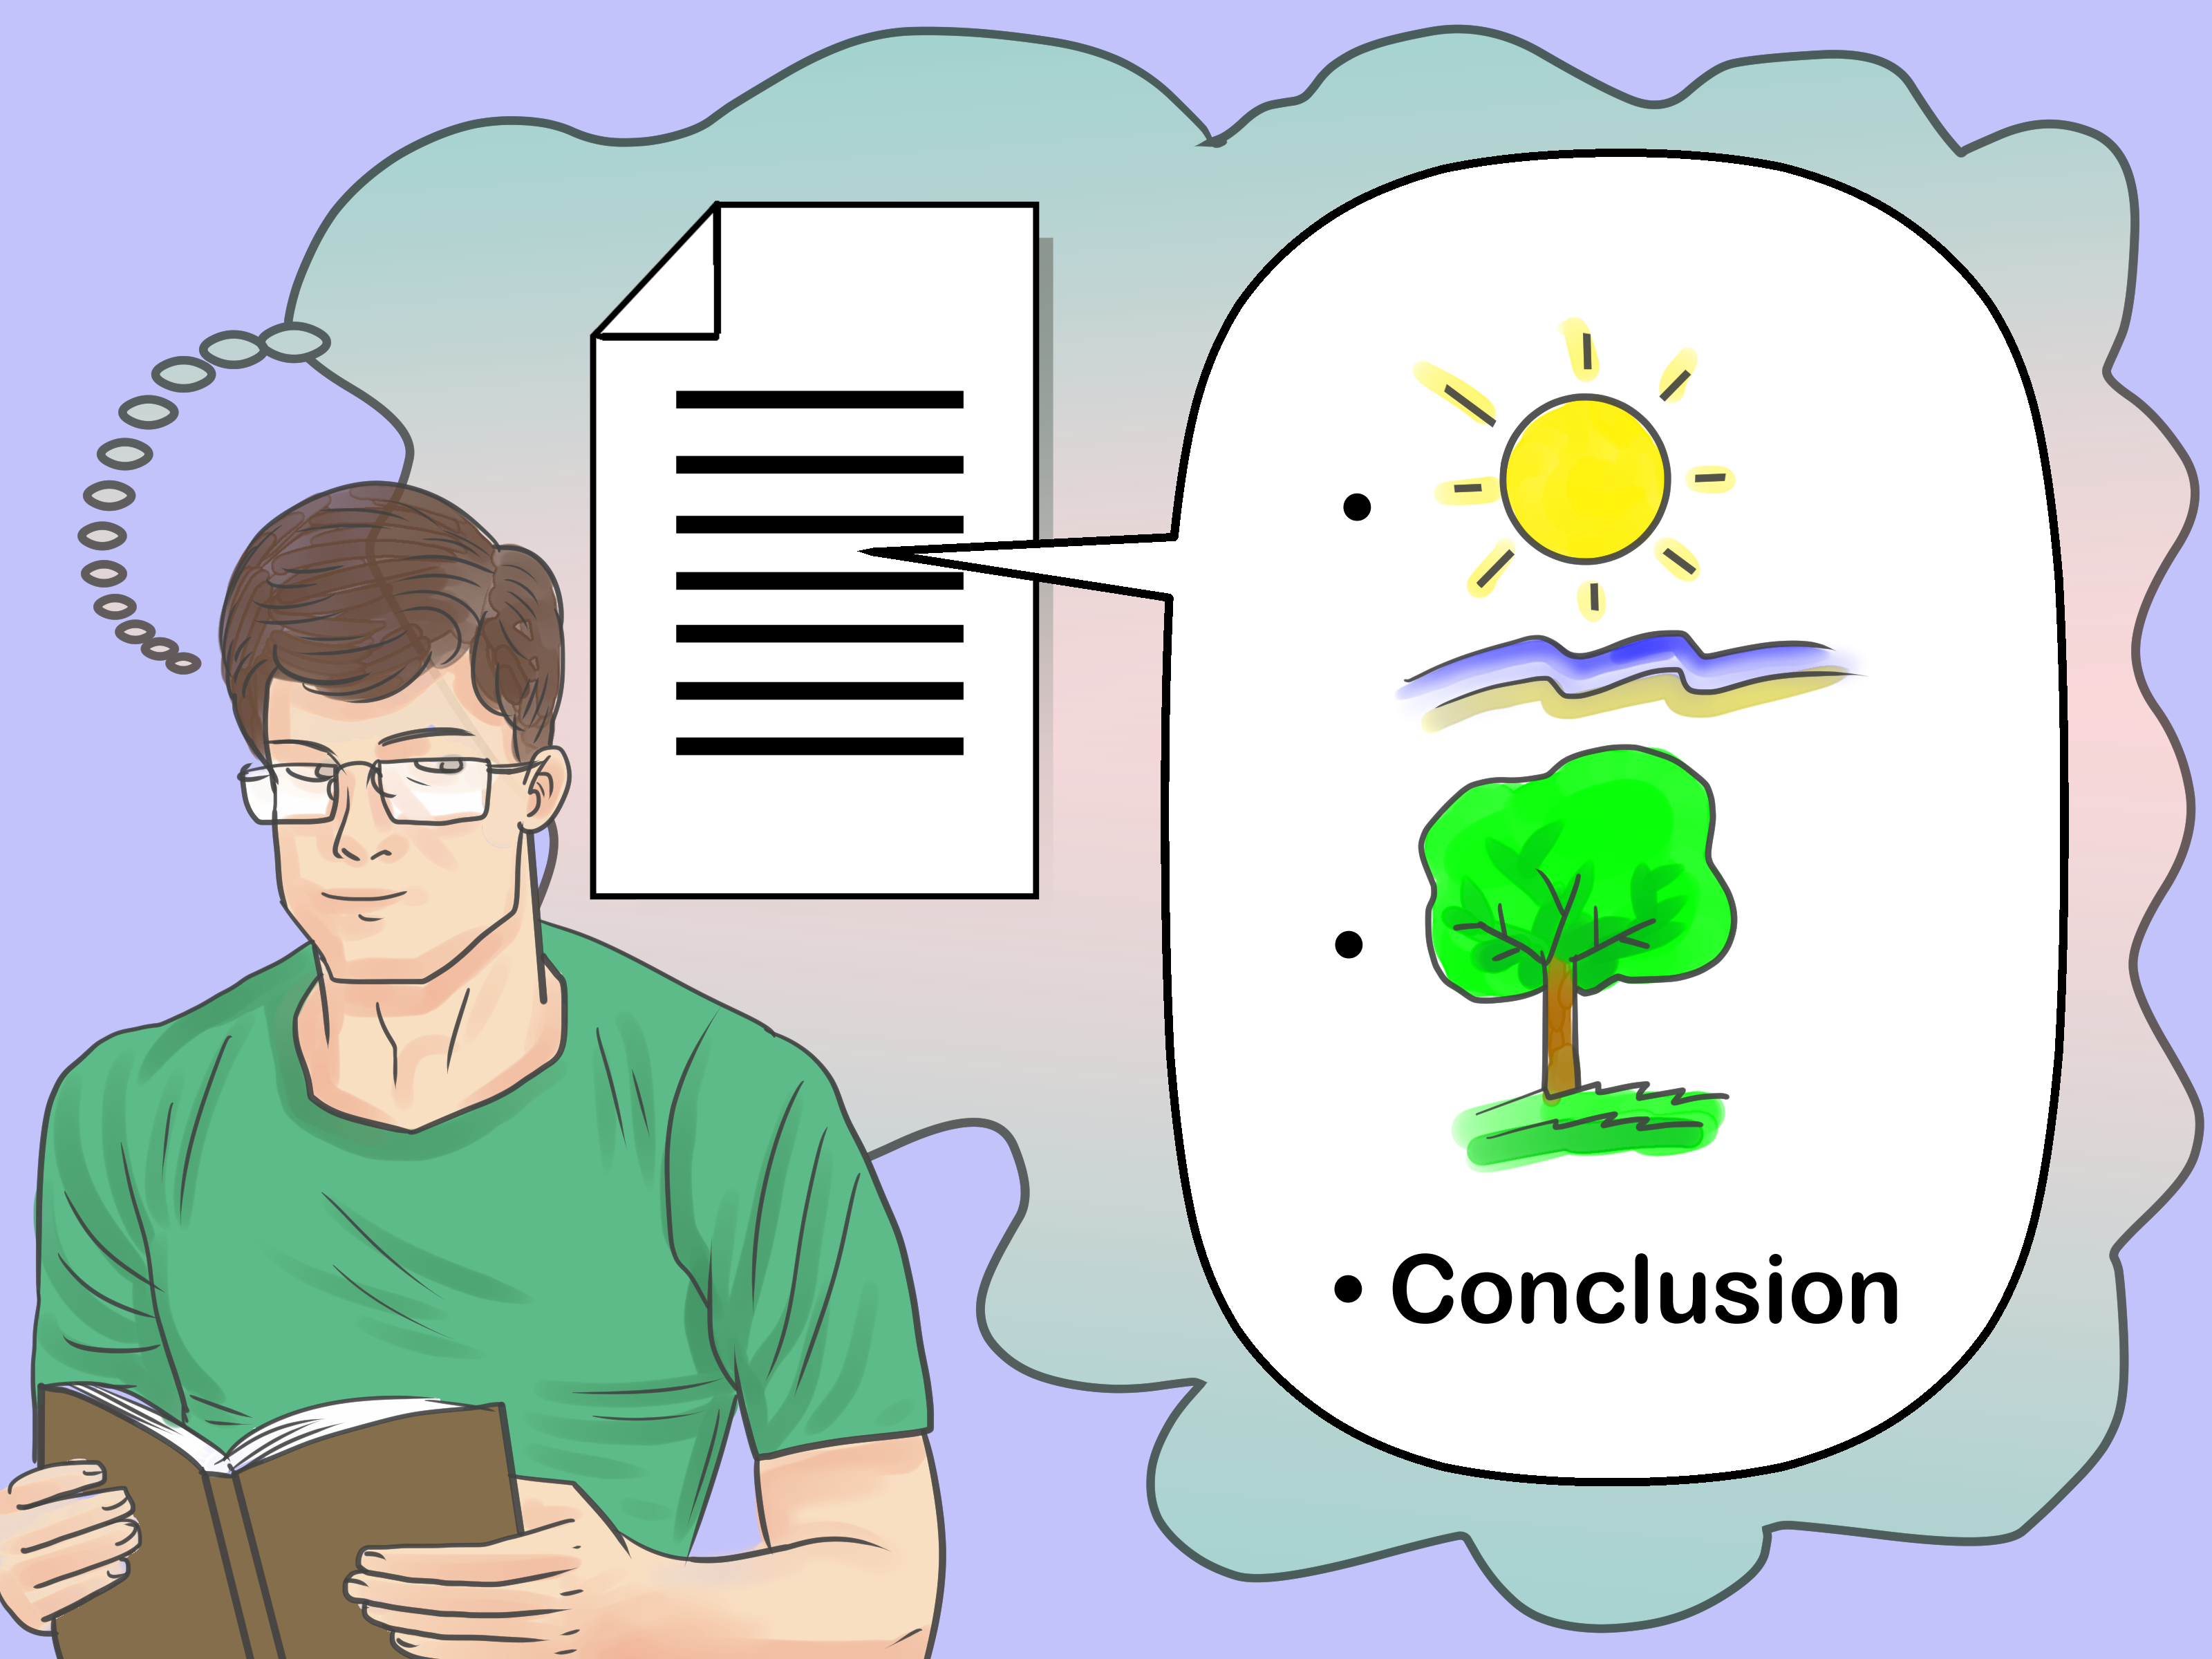 016 Essay Example Compare Contrast Write And Step Version Fascinating Topics Graphic Organizer Julius Caesar Answers High School Full